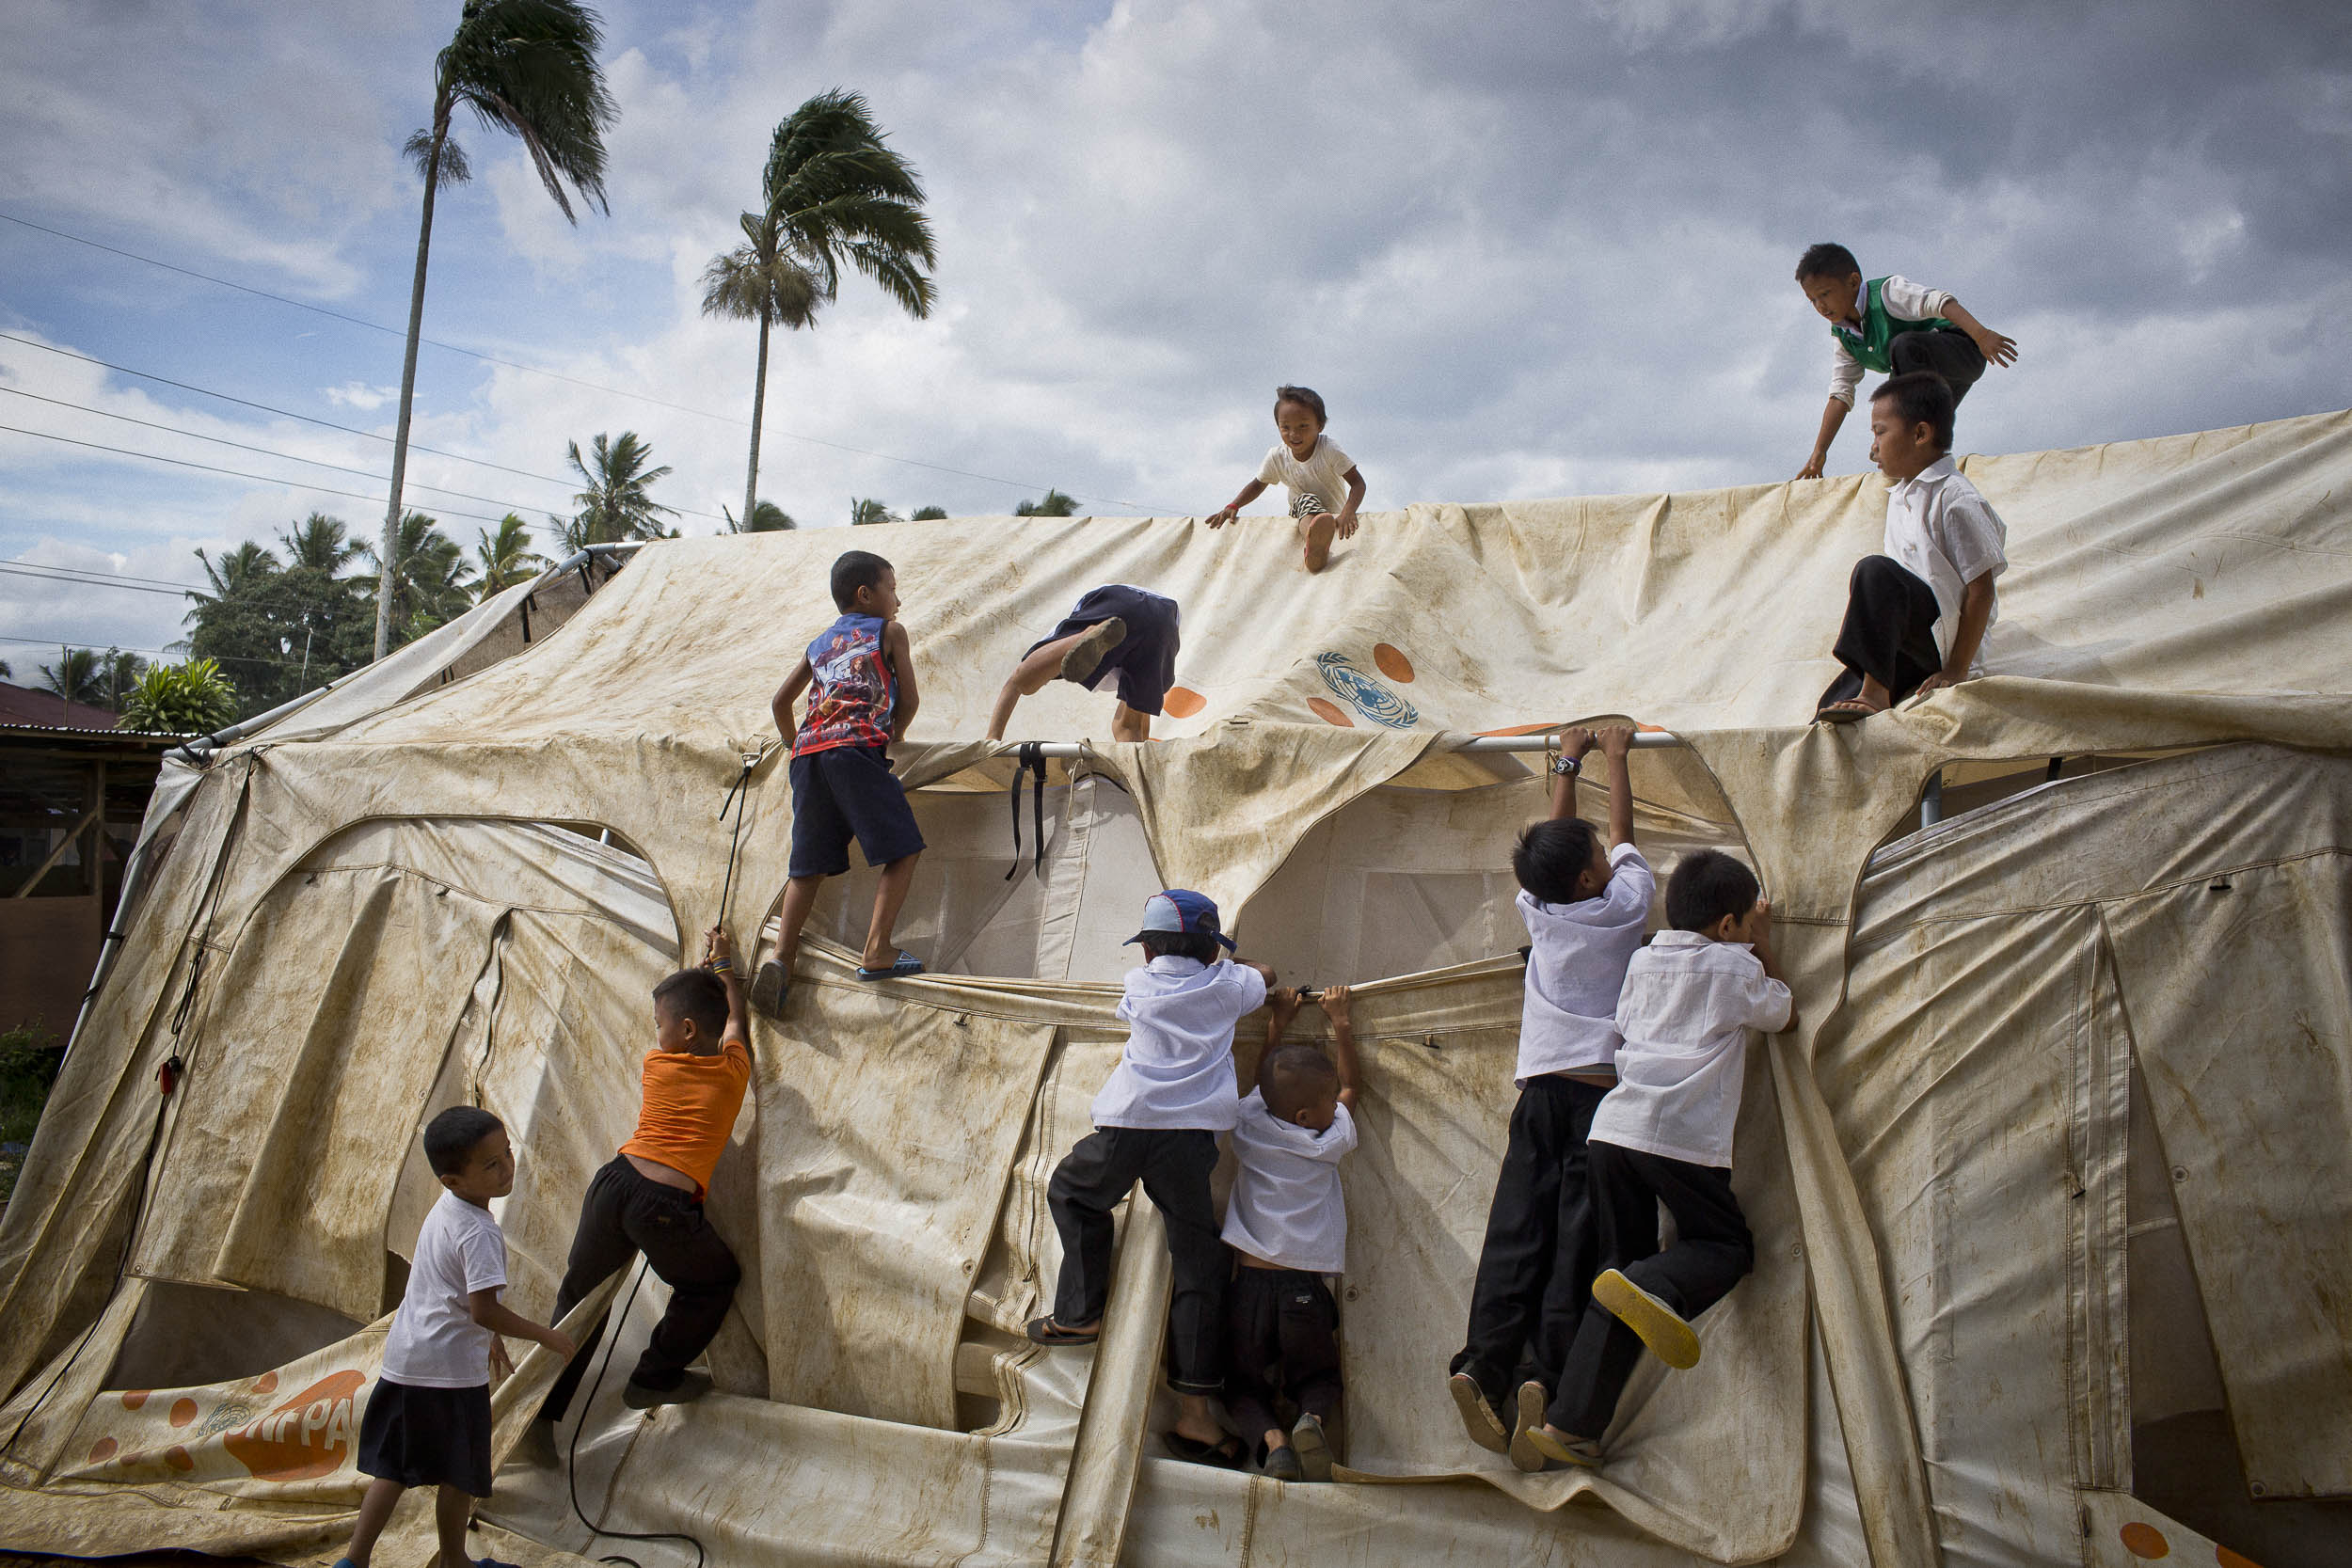 Children climb on a tent set up by a relief organization to accommodate children displaced by the fighting in Marawi at the Saguiaran Central Elementary School. The school saw its population double to accommodate children living in an IDP camp nearby.